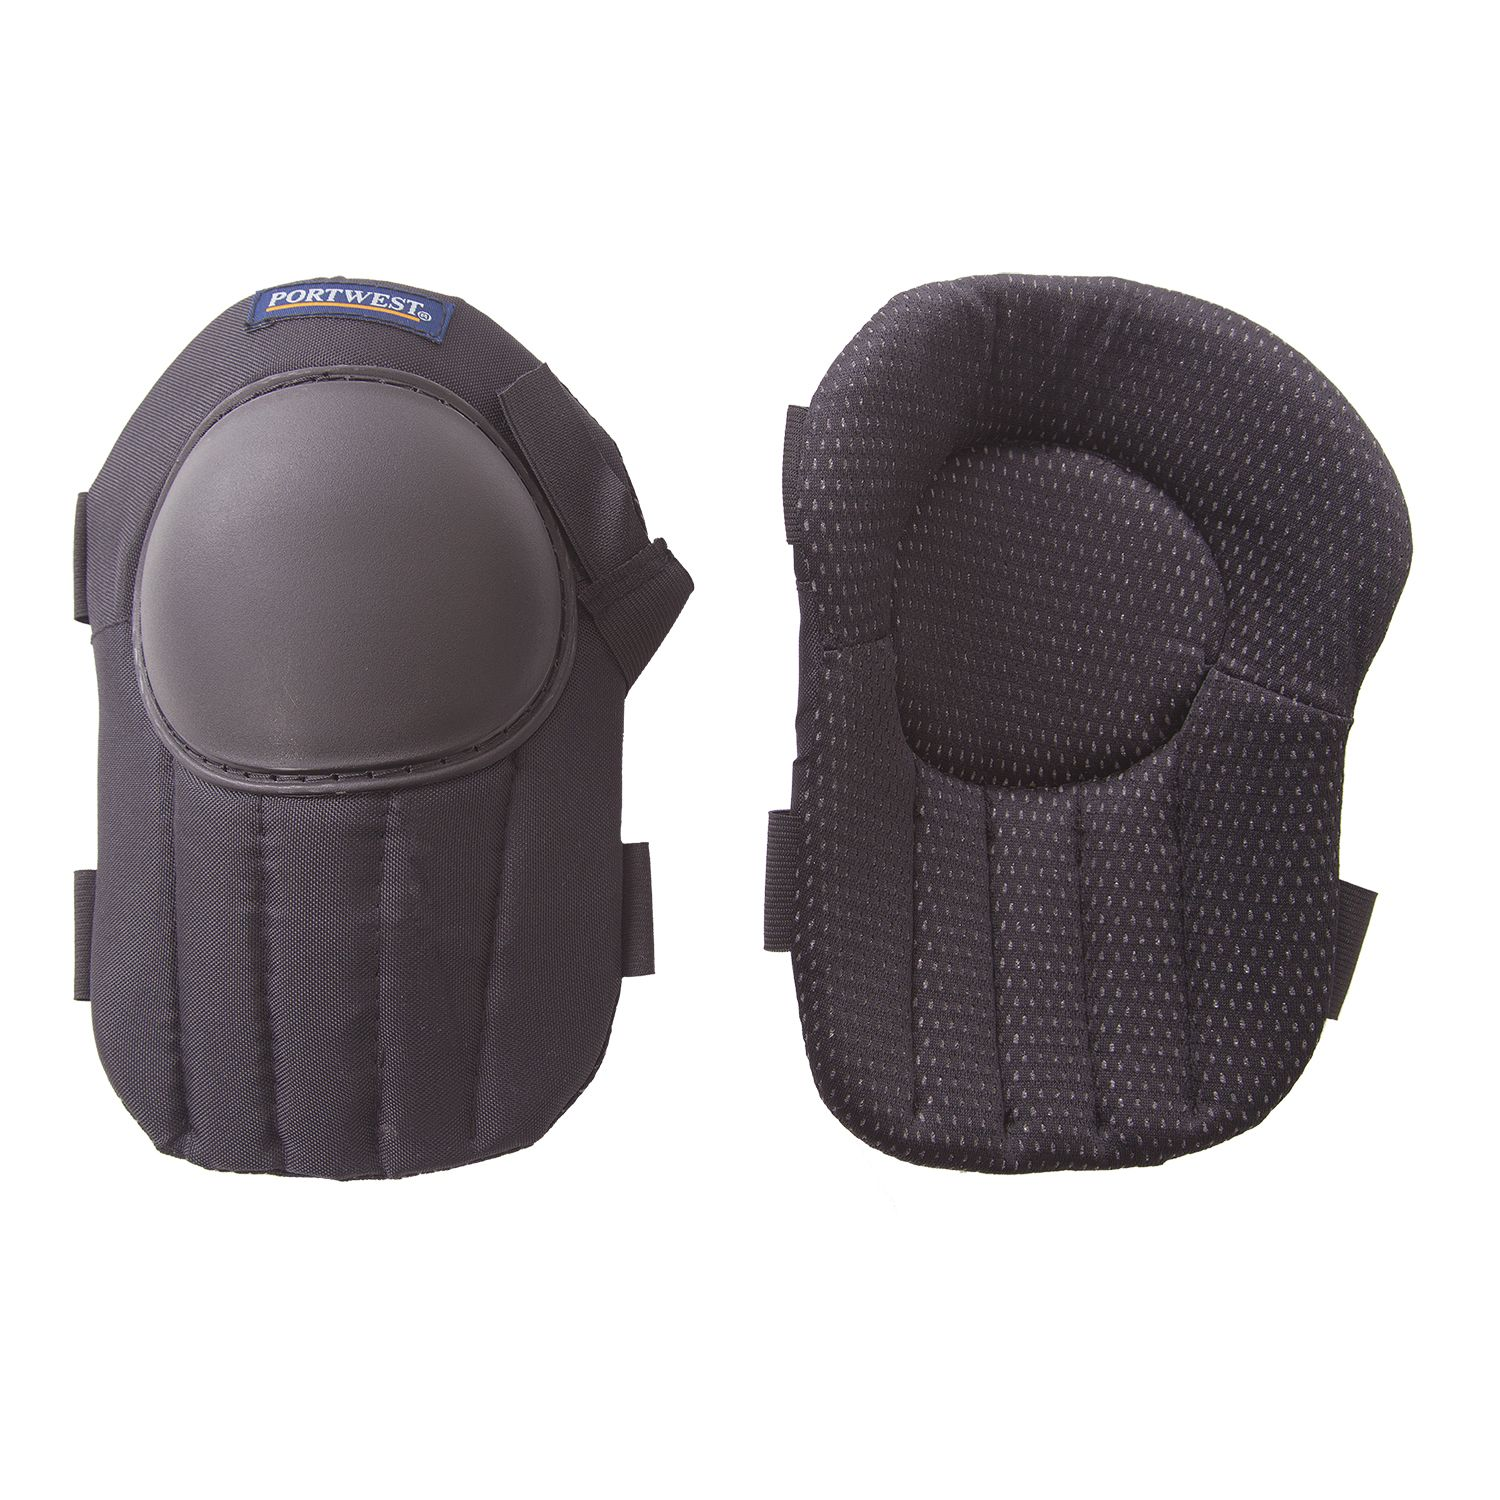 KP20 Portwest knee pads